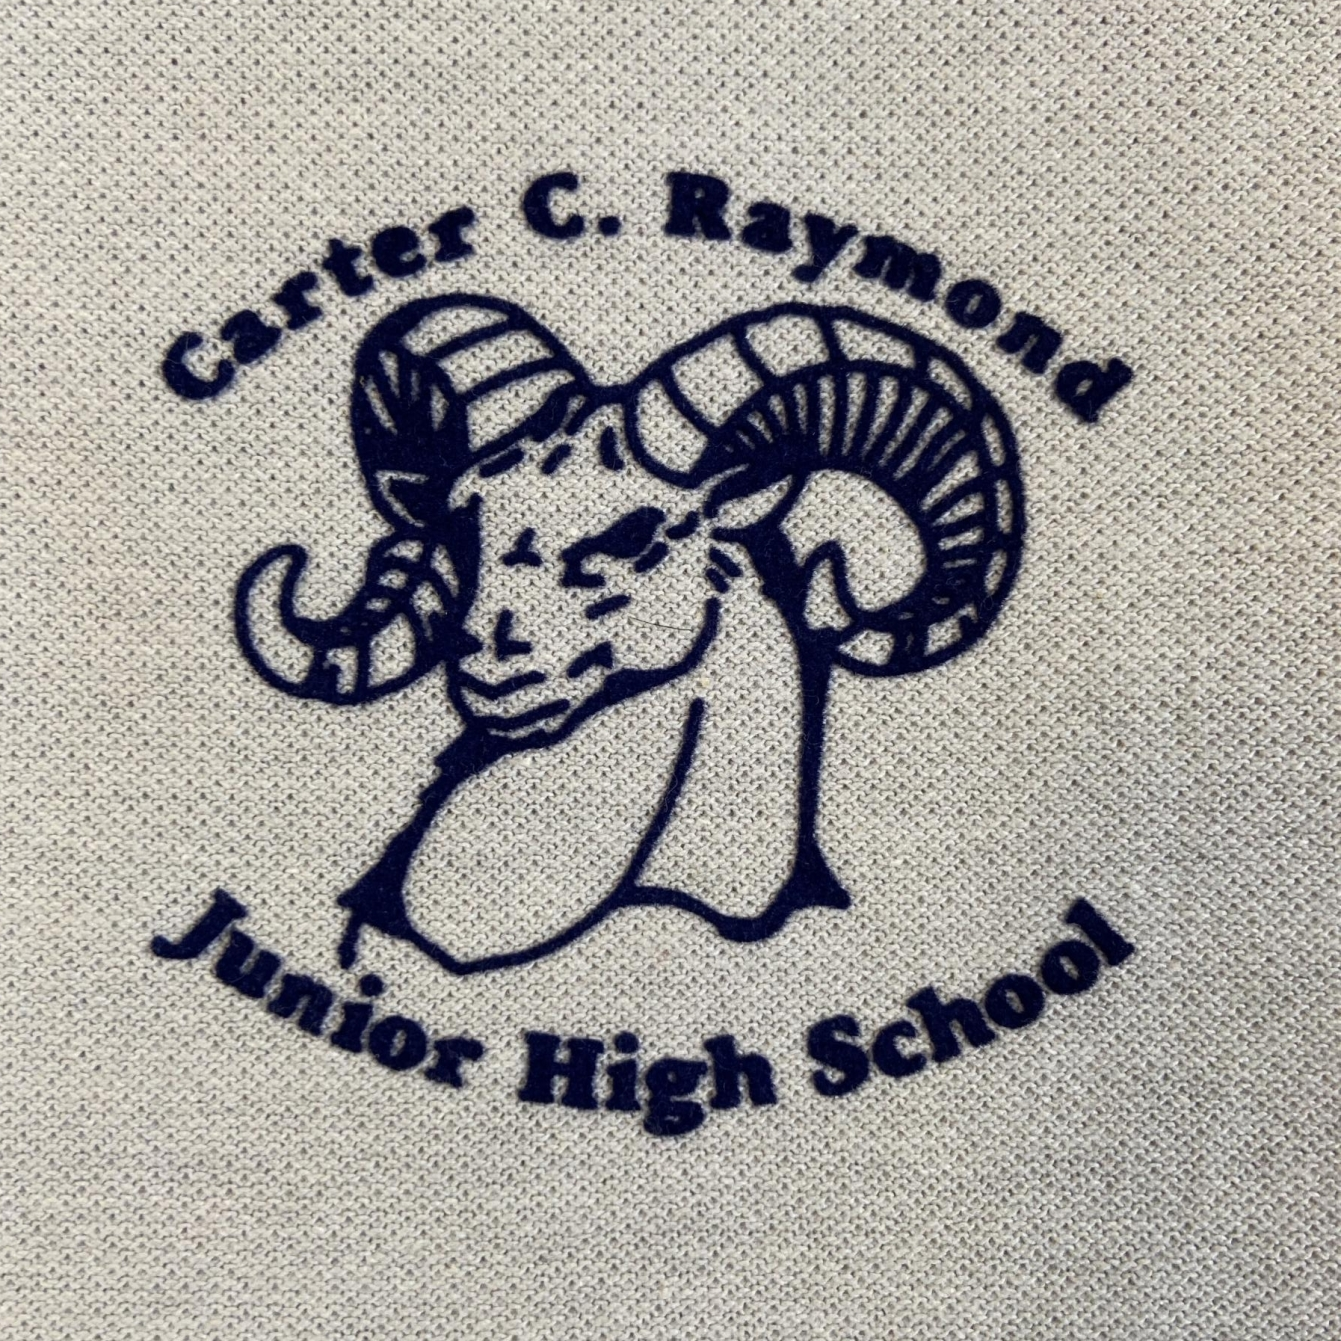 Carter C. Raymond Junior High School Patch Sign Studios